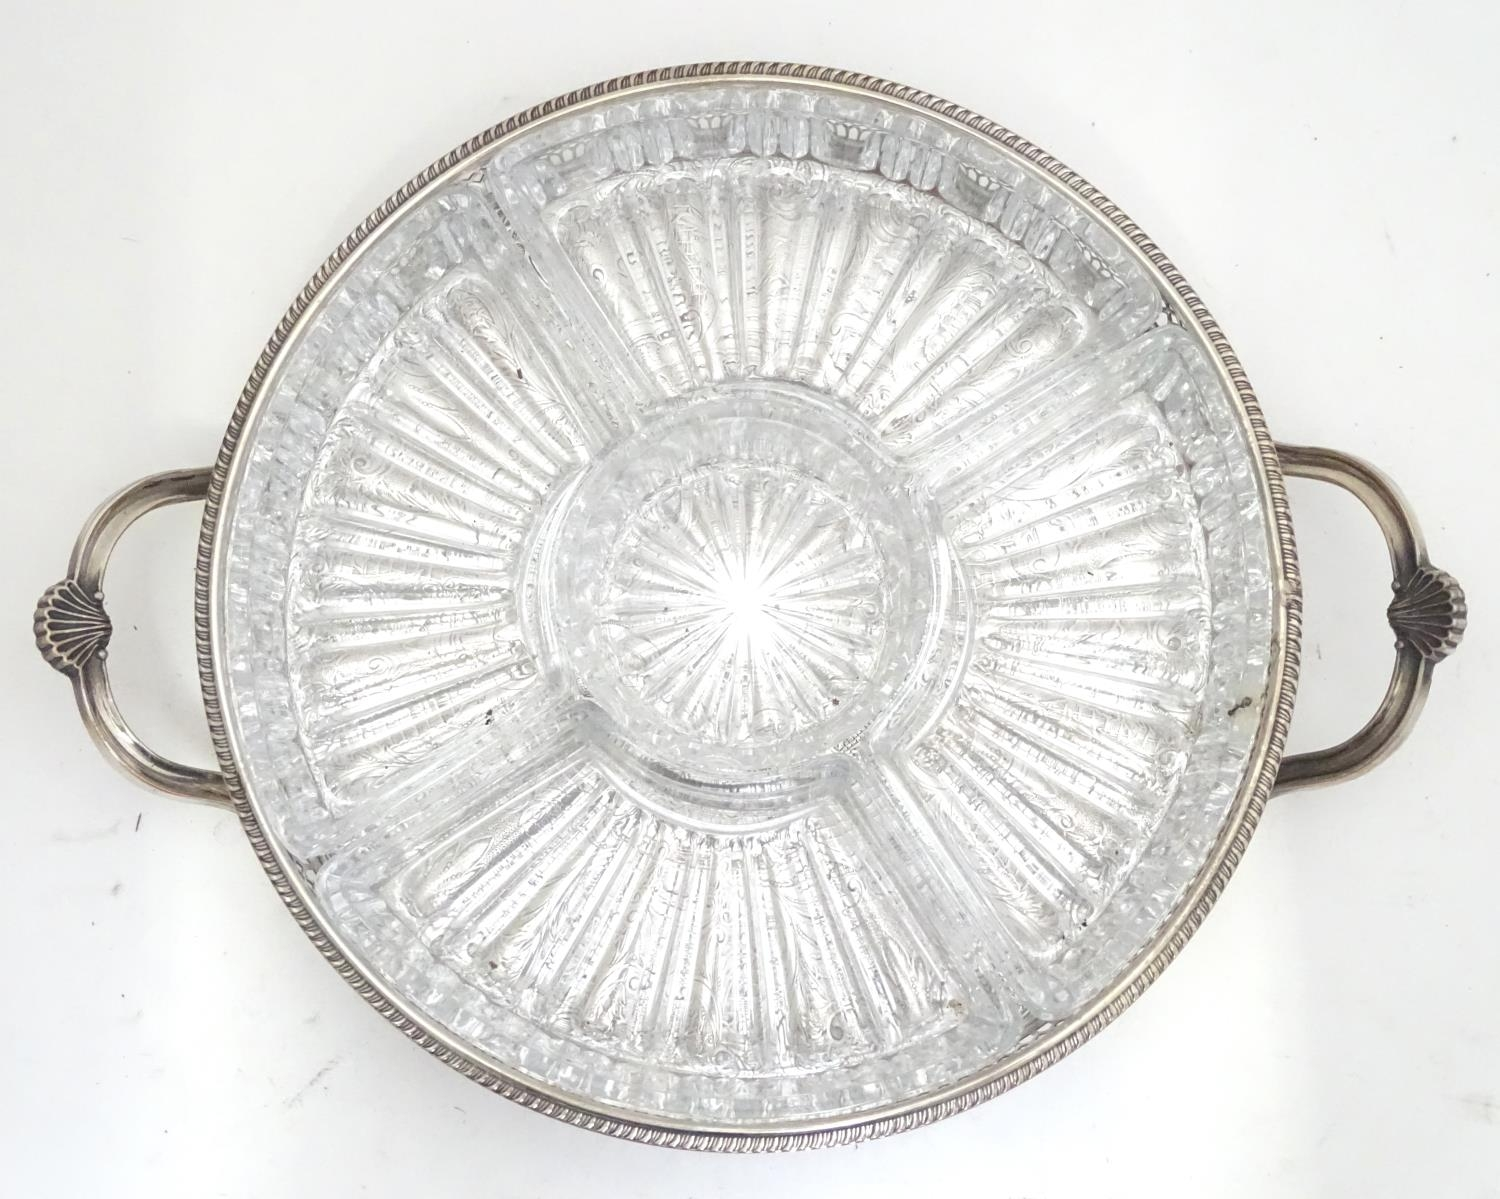 A silver plated entree dish with 5 inset glass sections Please Note - we do not make reference to - Image 3 of 6